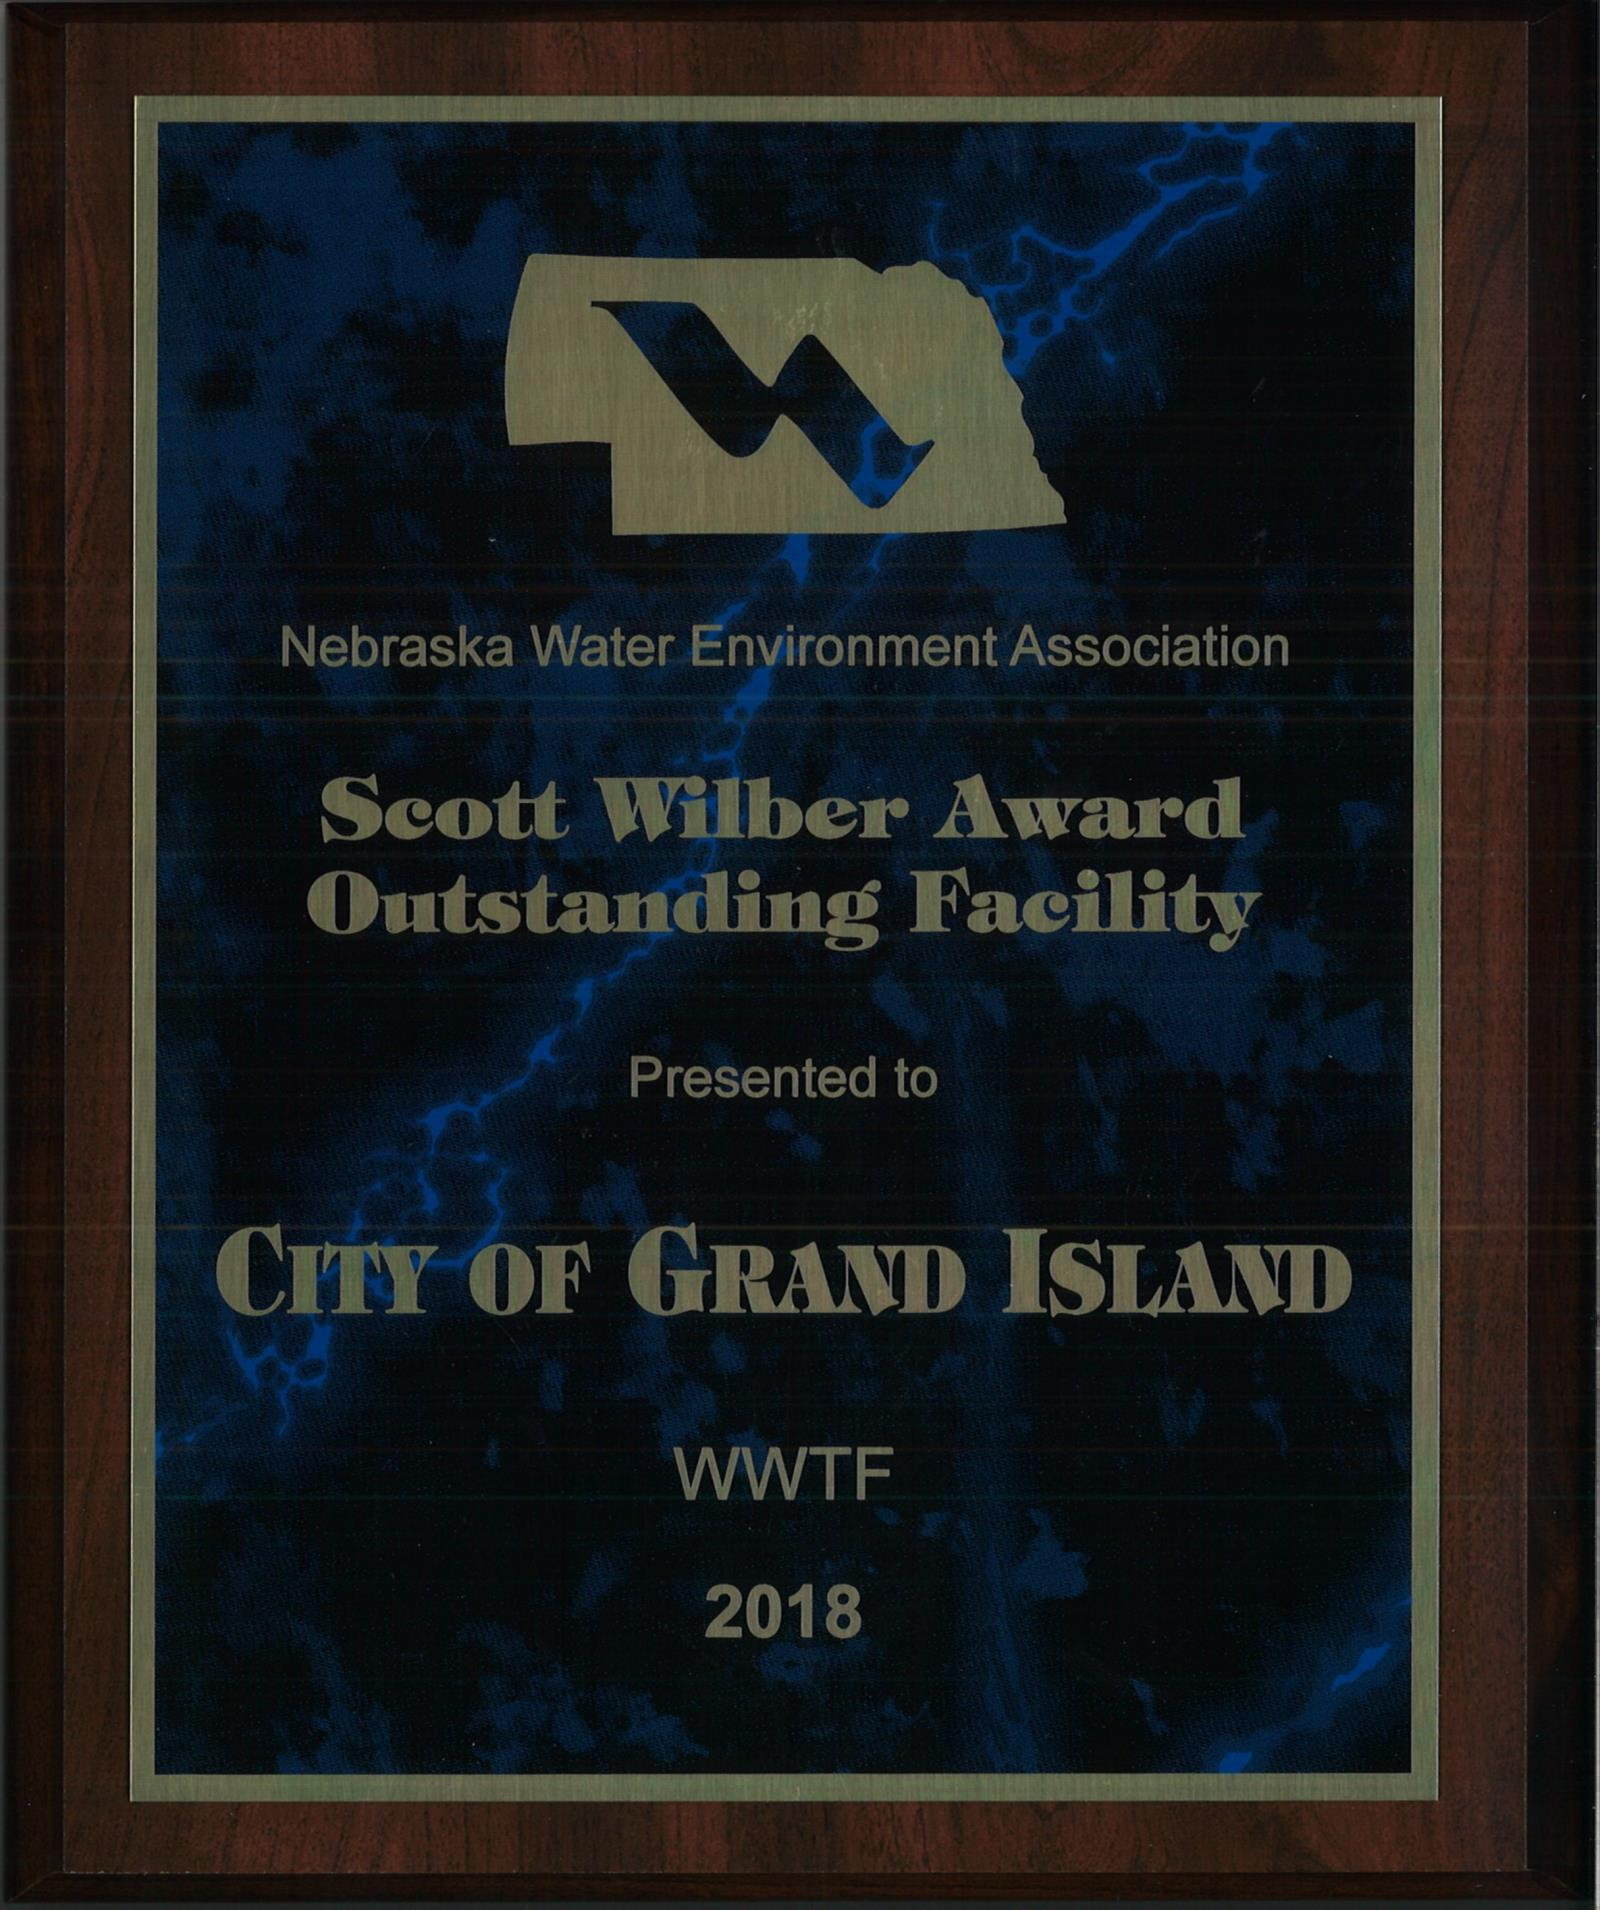 Scott Wilber Award Outstanding Facility